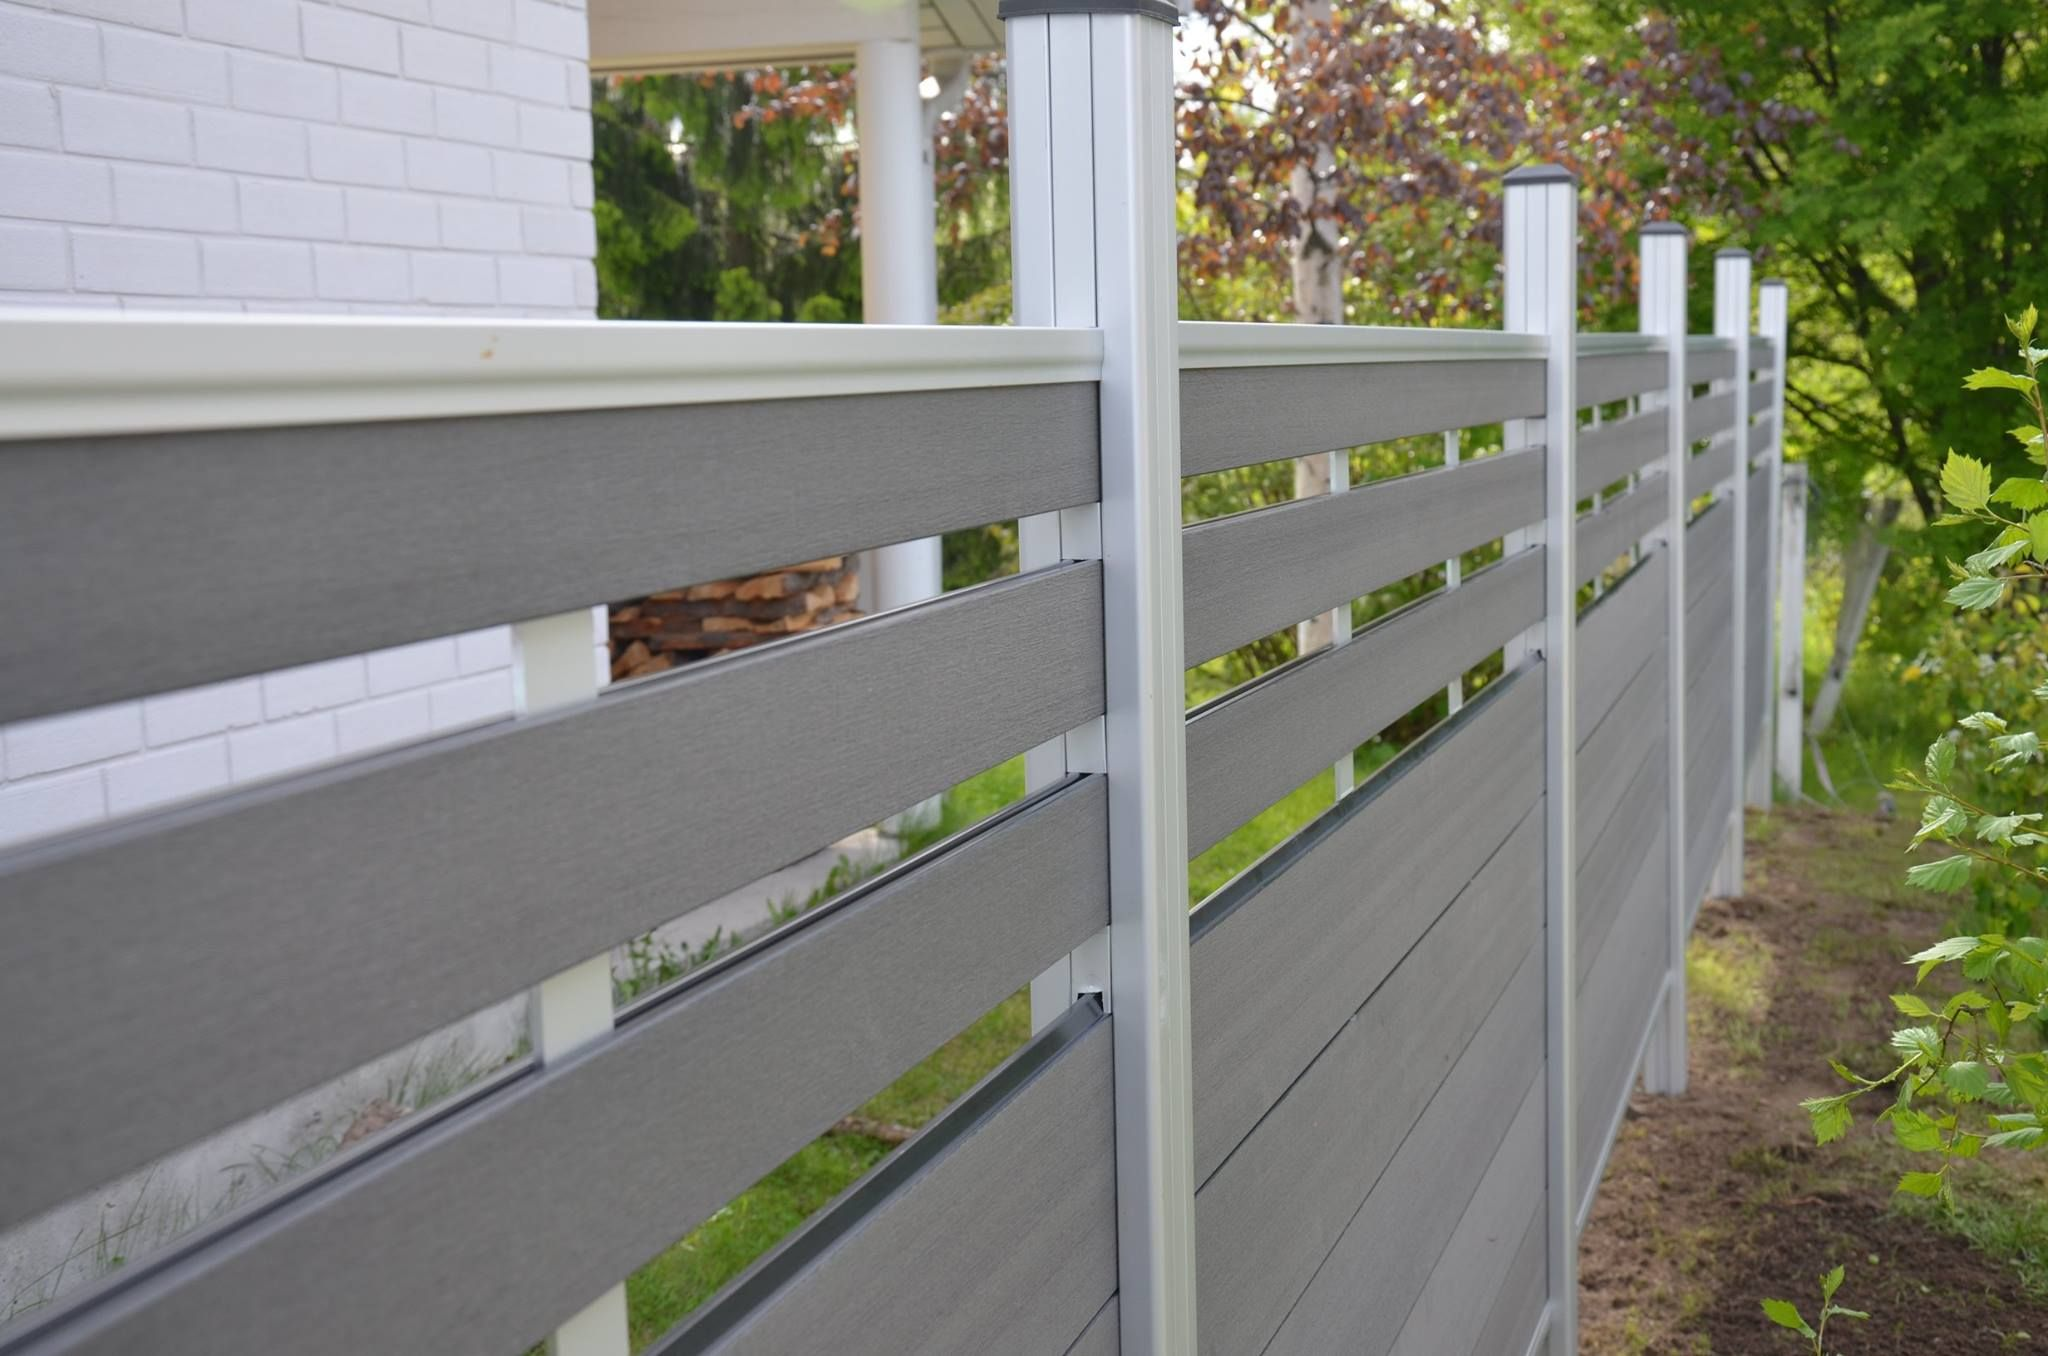 Roof terrace composite fence green architectural fence design pvc picket fence uk wood grain